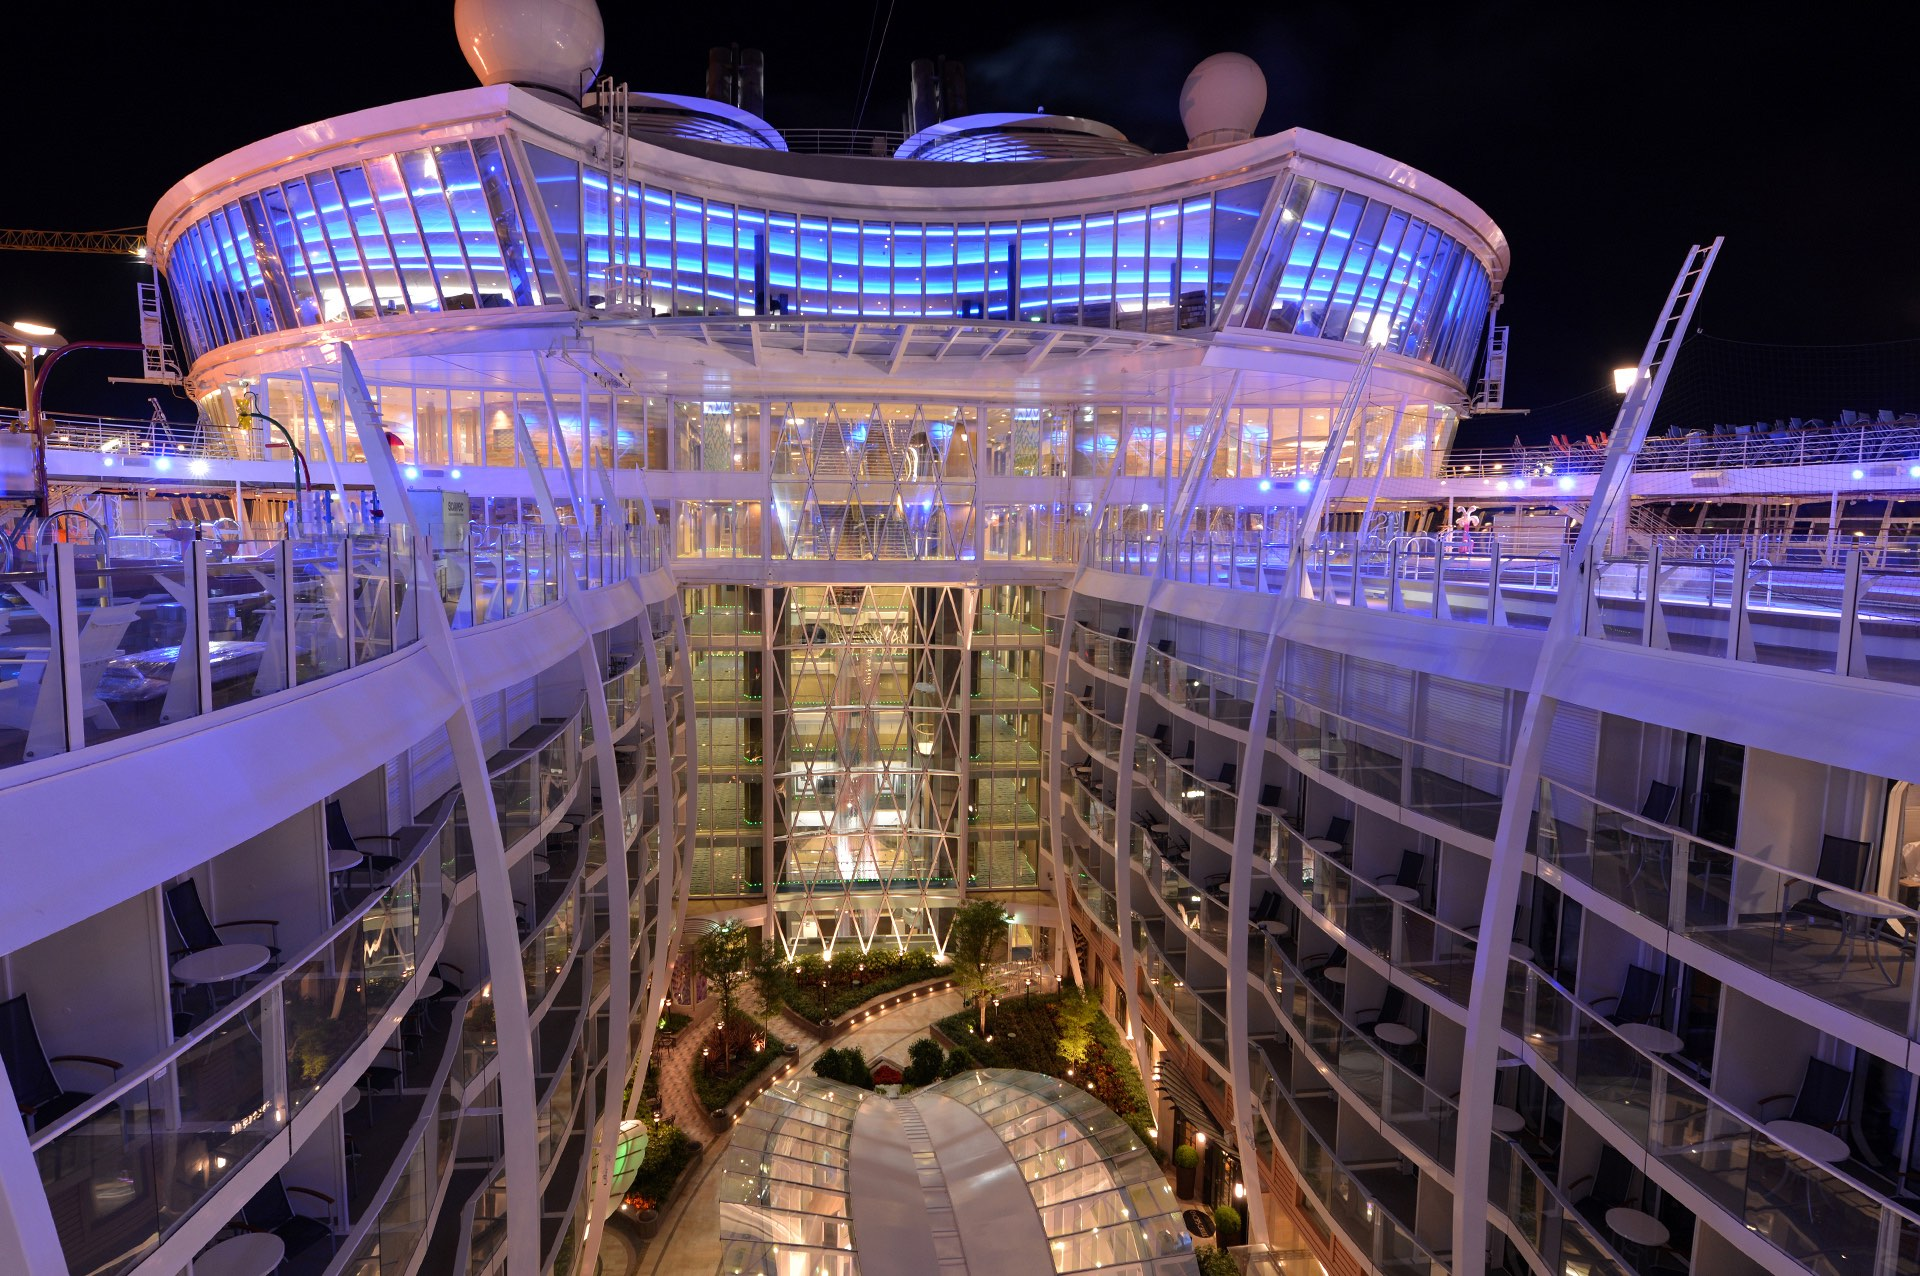 Central Atrium onboard Royal Caribbean Cruise Liner